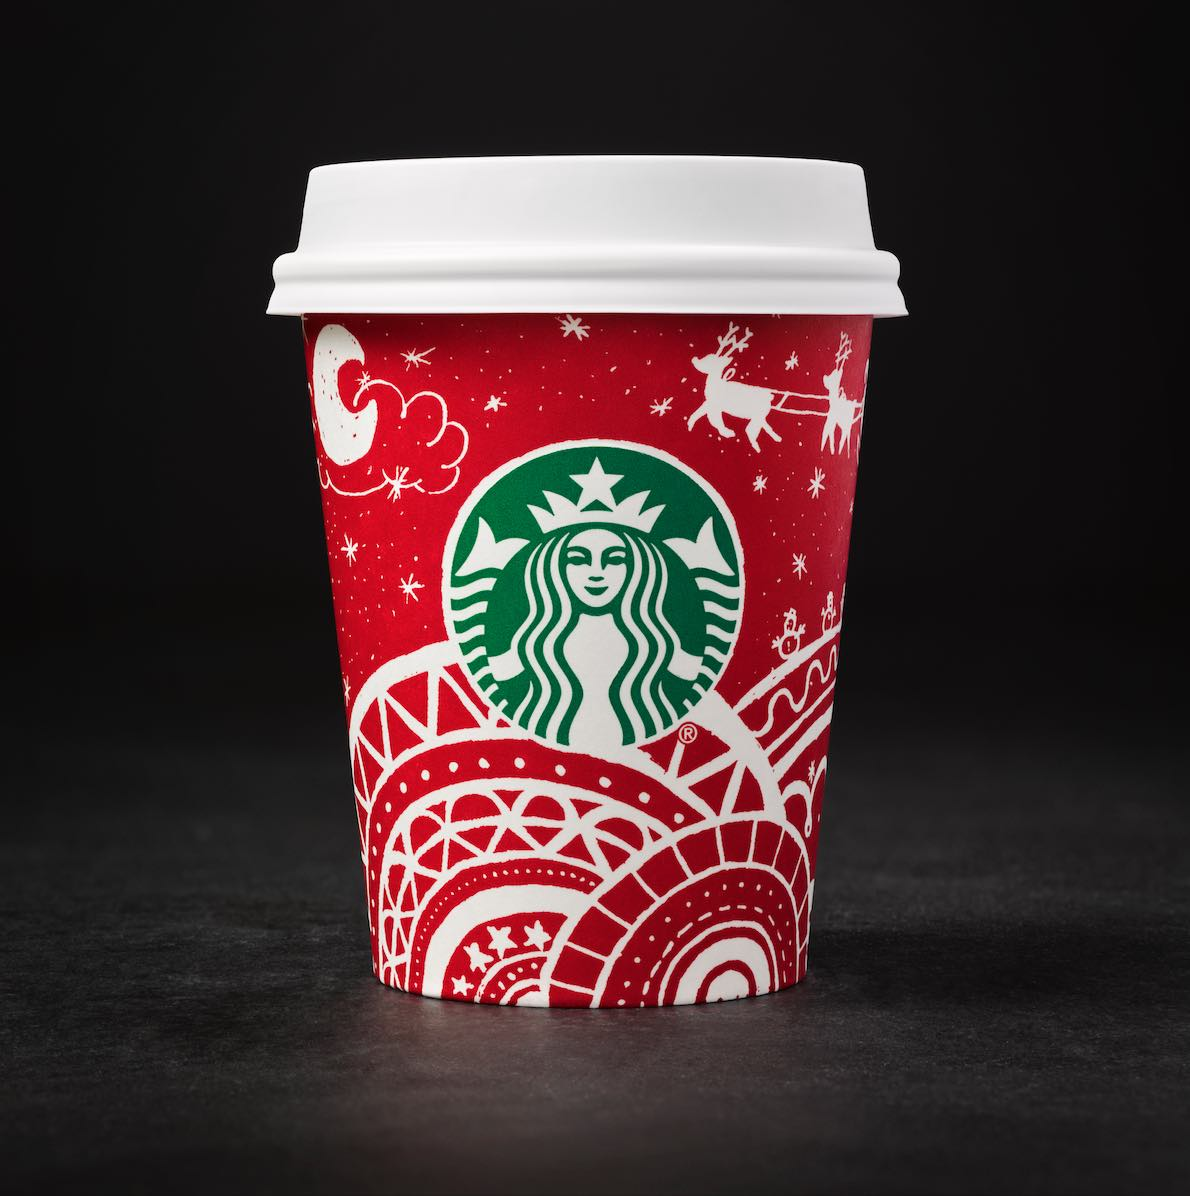 starbucks-sleigh-ride-by-eun-joo-daejeon-south-korea-aspirantsg